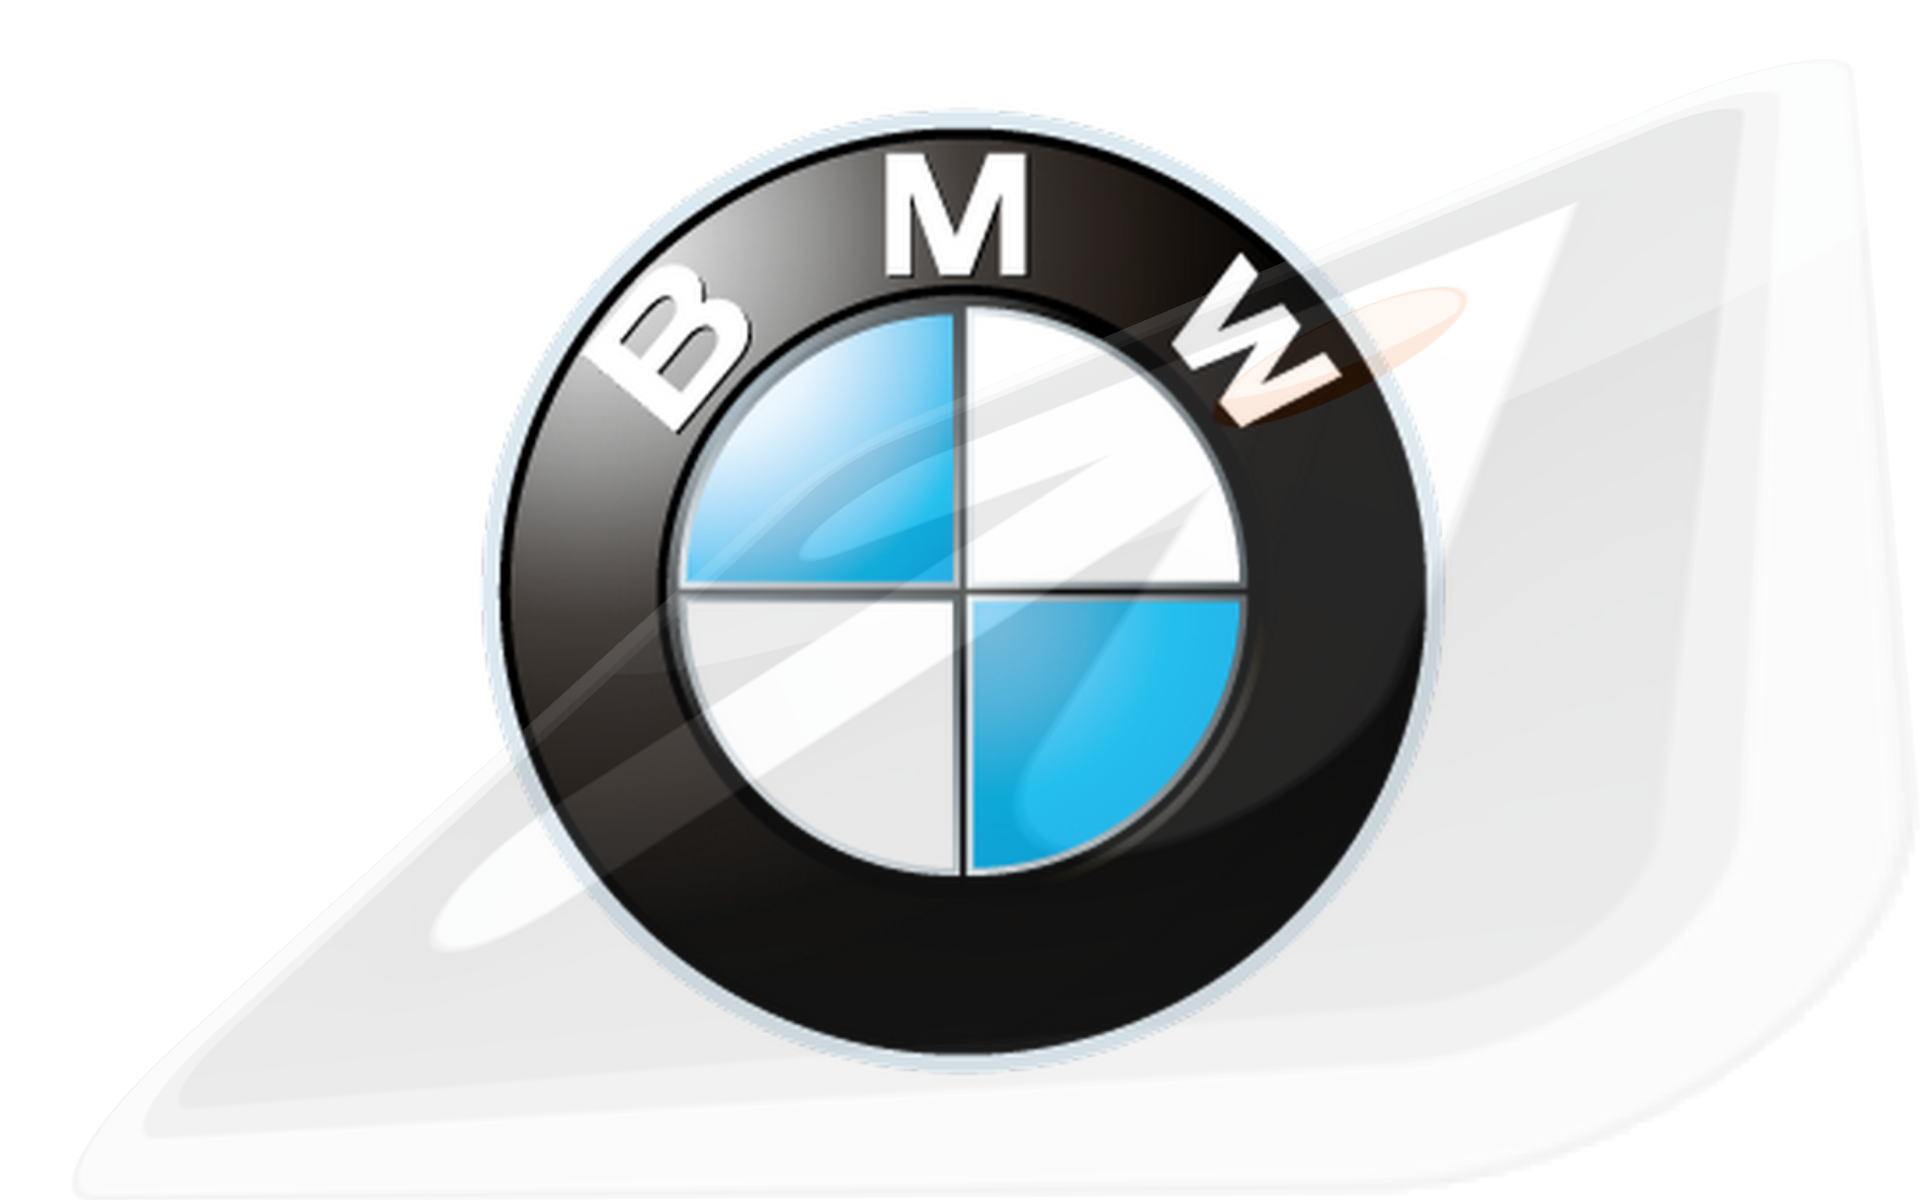 BMW - Media & IT Maue